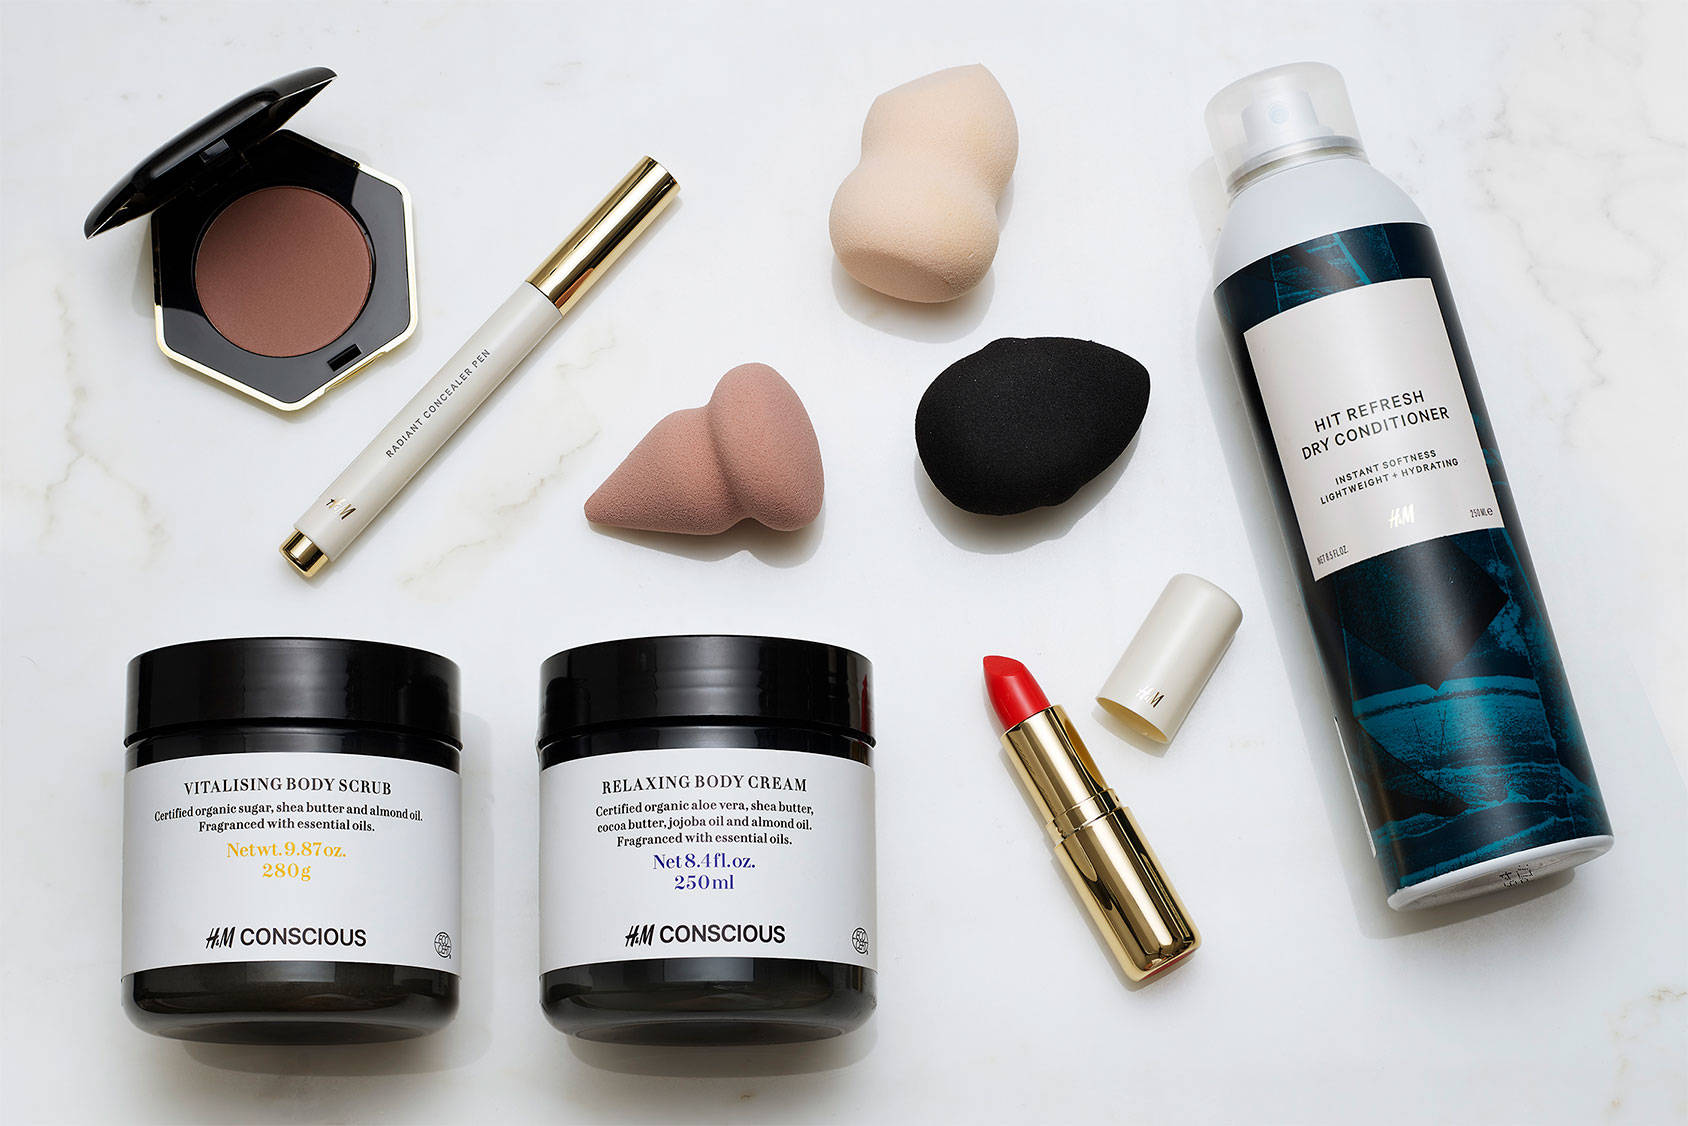 Winter-proof your beauty arsenal